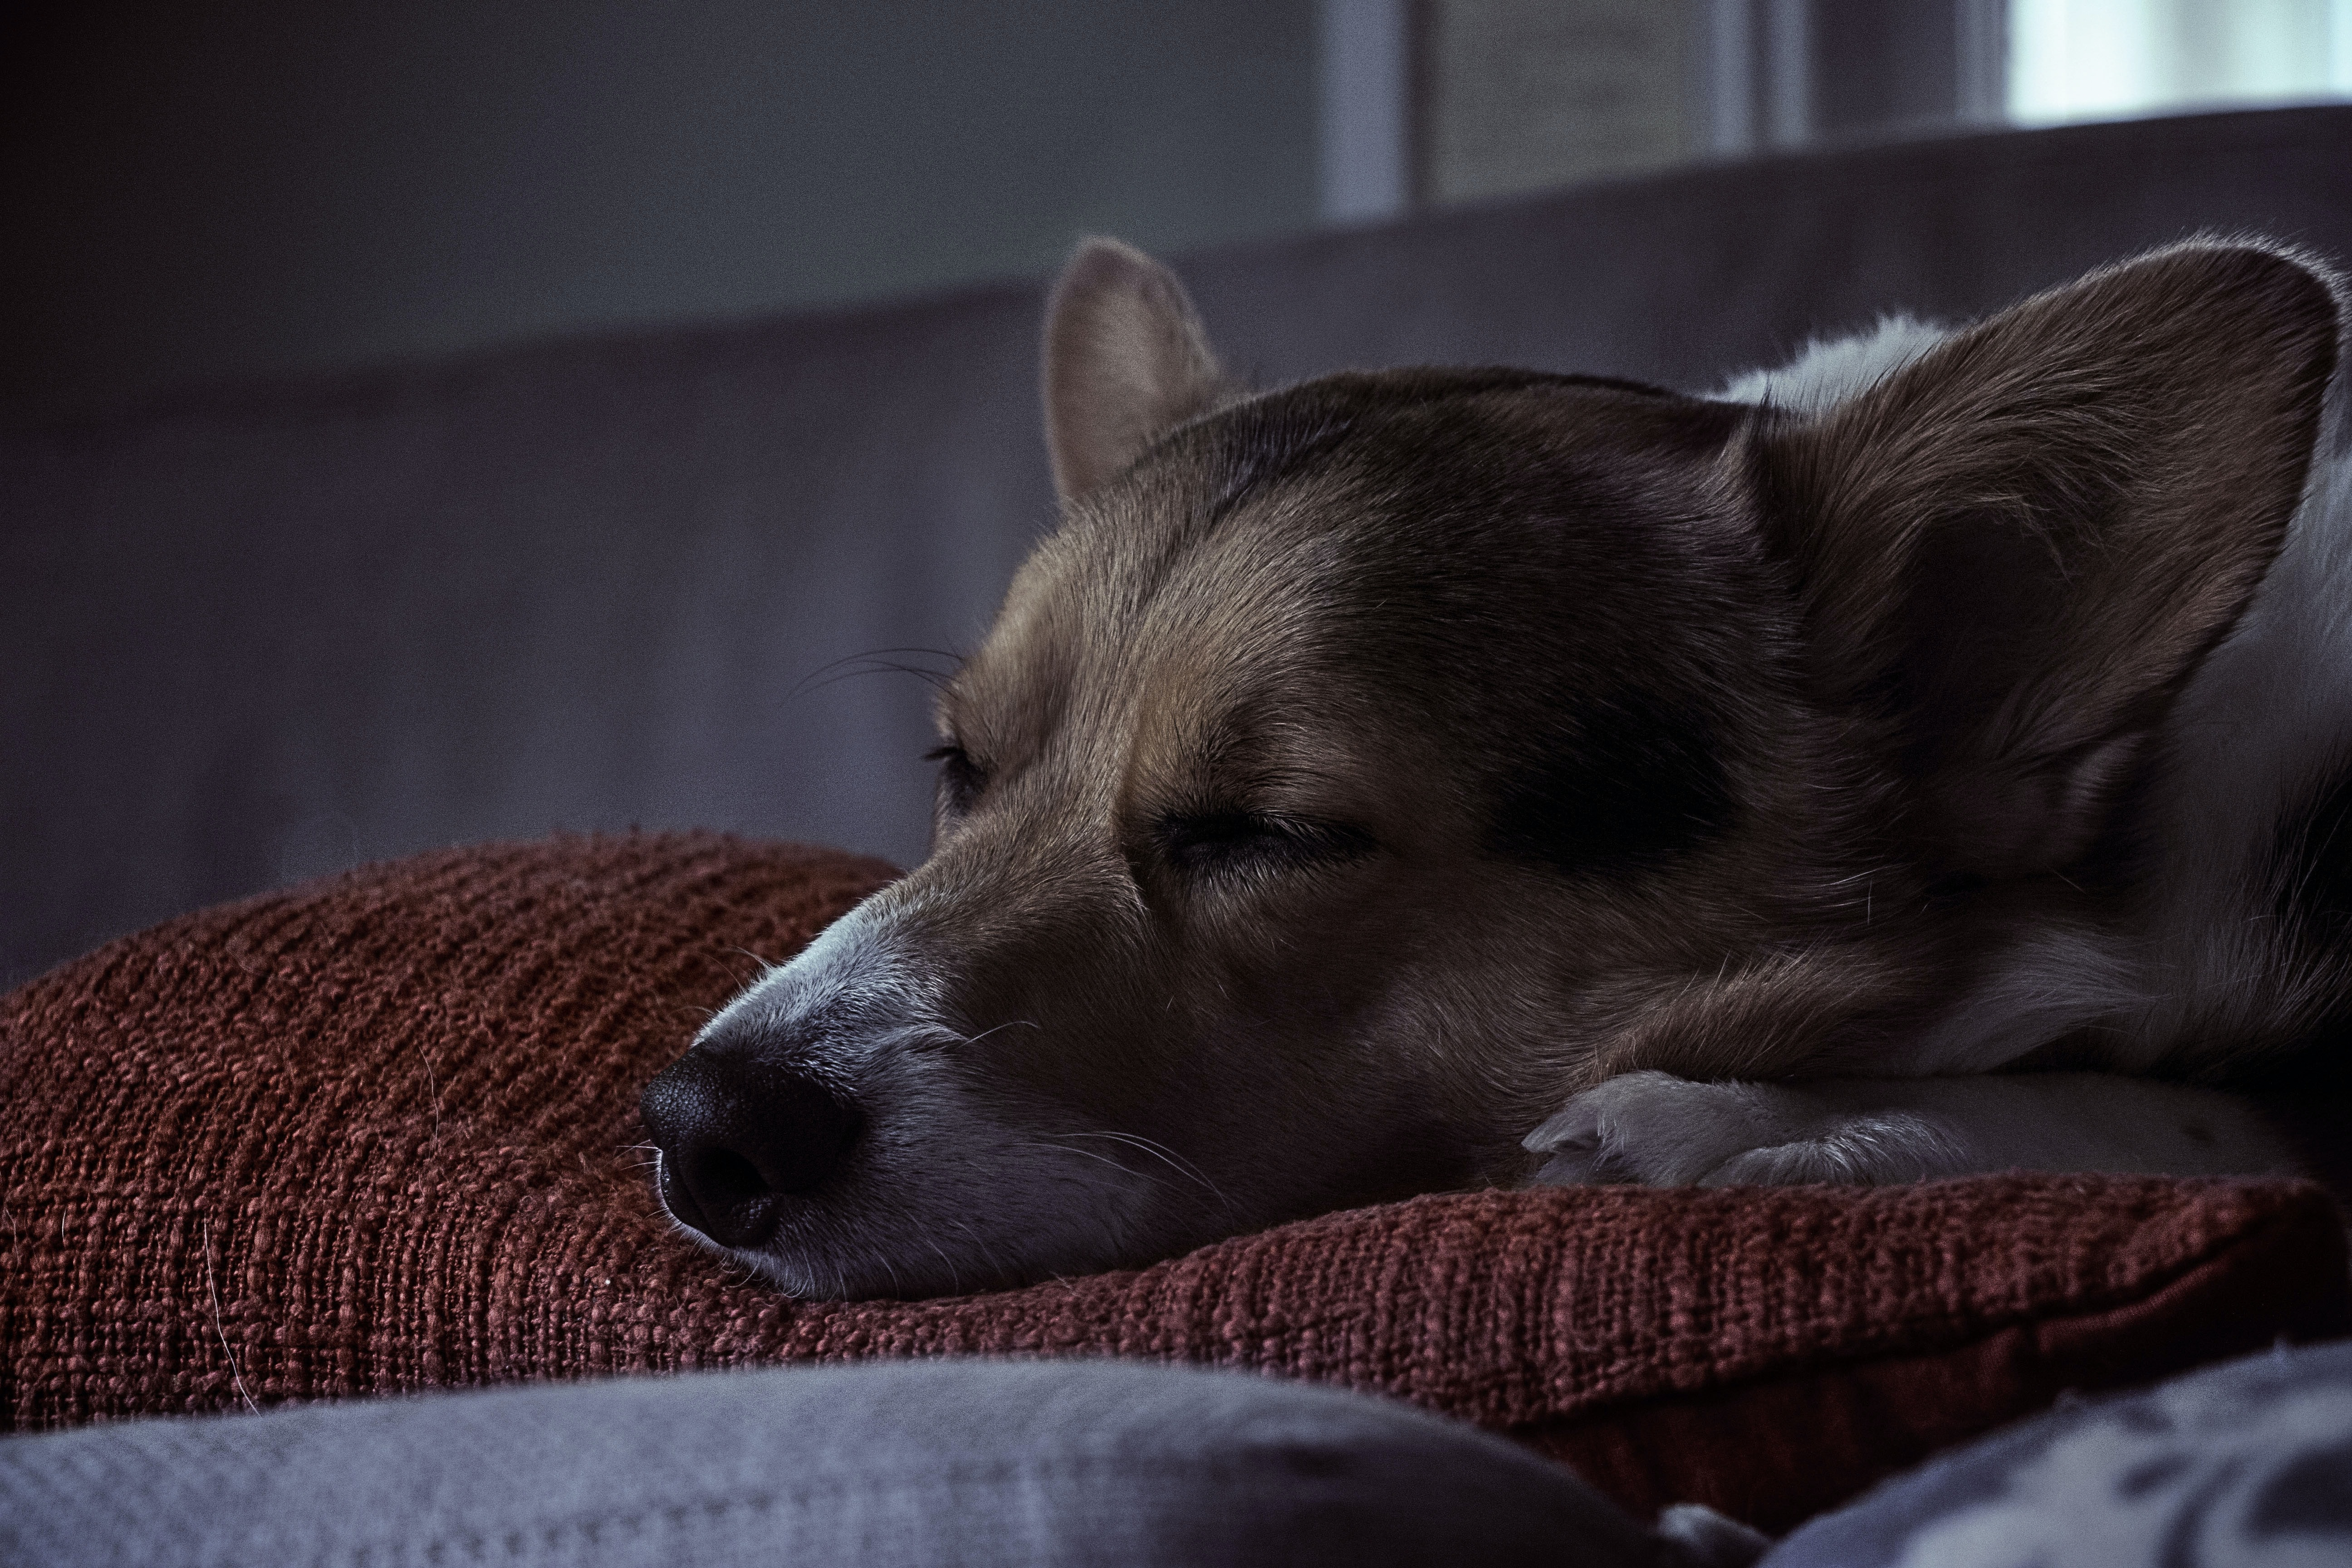 A corgi sleeping on a soft pillow